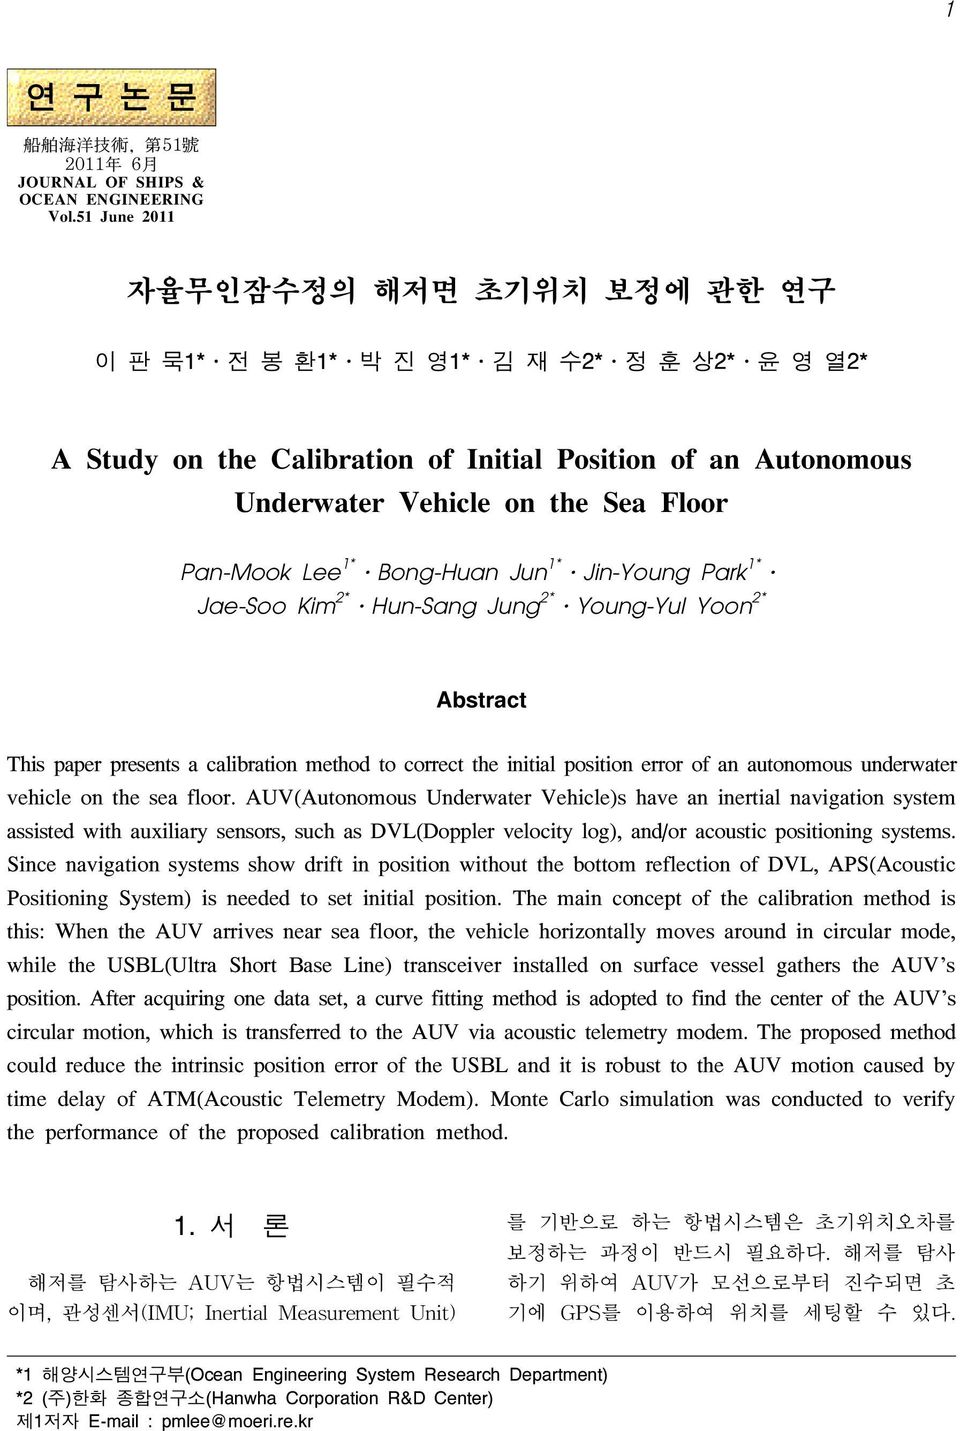 Lee 1* Bong-Huan Jun 1* Jin-Young Park 1* Jae-Soo Kim 2* Hun-Sang Jung 2* Young-Yul Yoon 2* Abstract This paper presents a calibration method to correct the initial position error of an autonomous